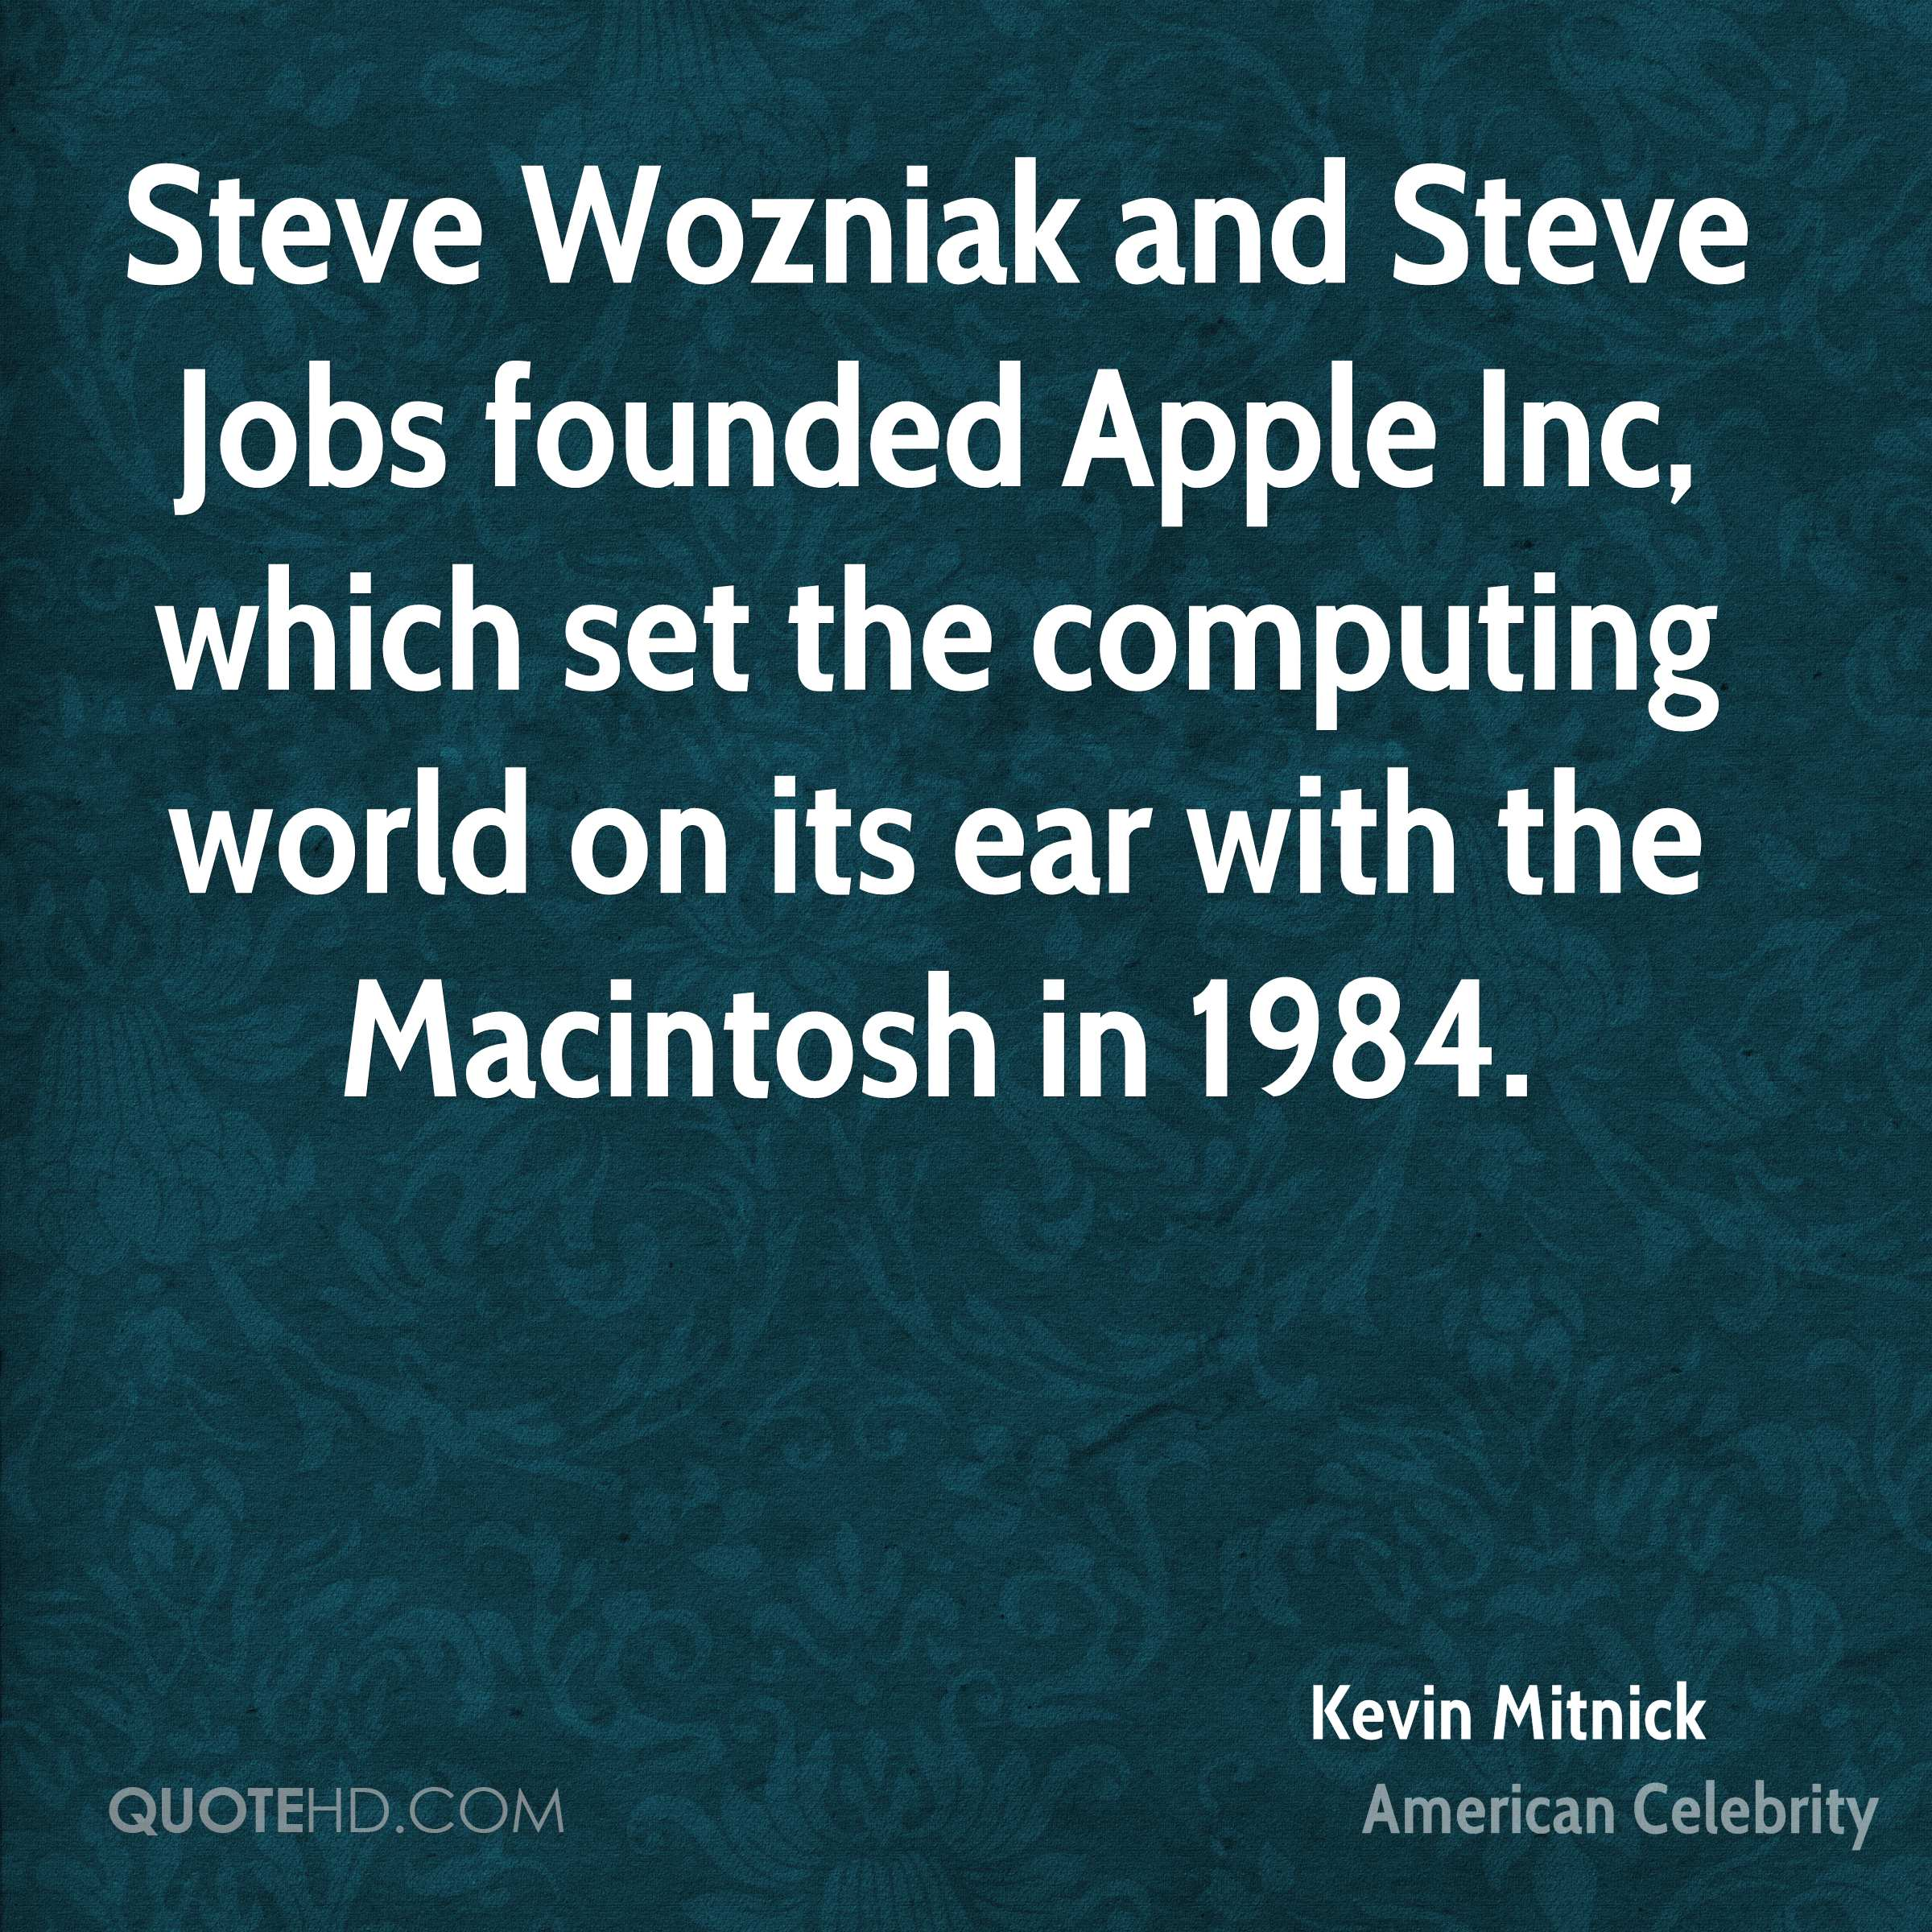 Steve Wozniak and Steve Jobs founded Apple Inc, which set the computing world on its ear with the Macintosh in 1984.